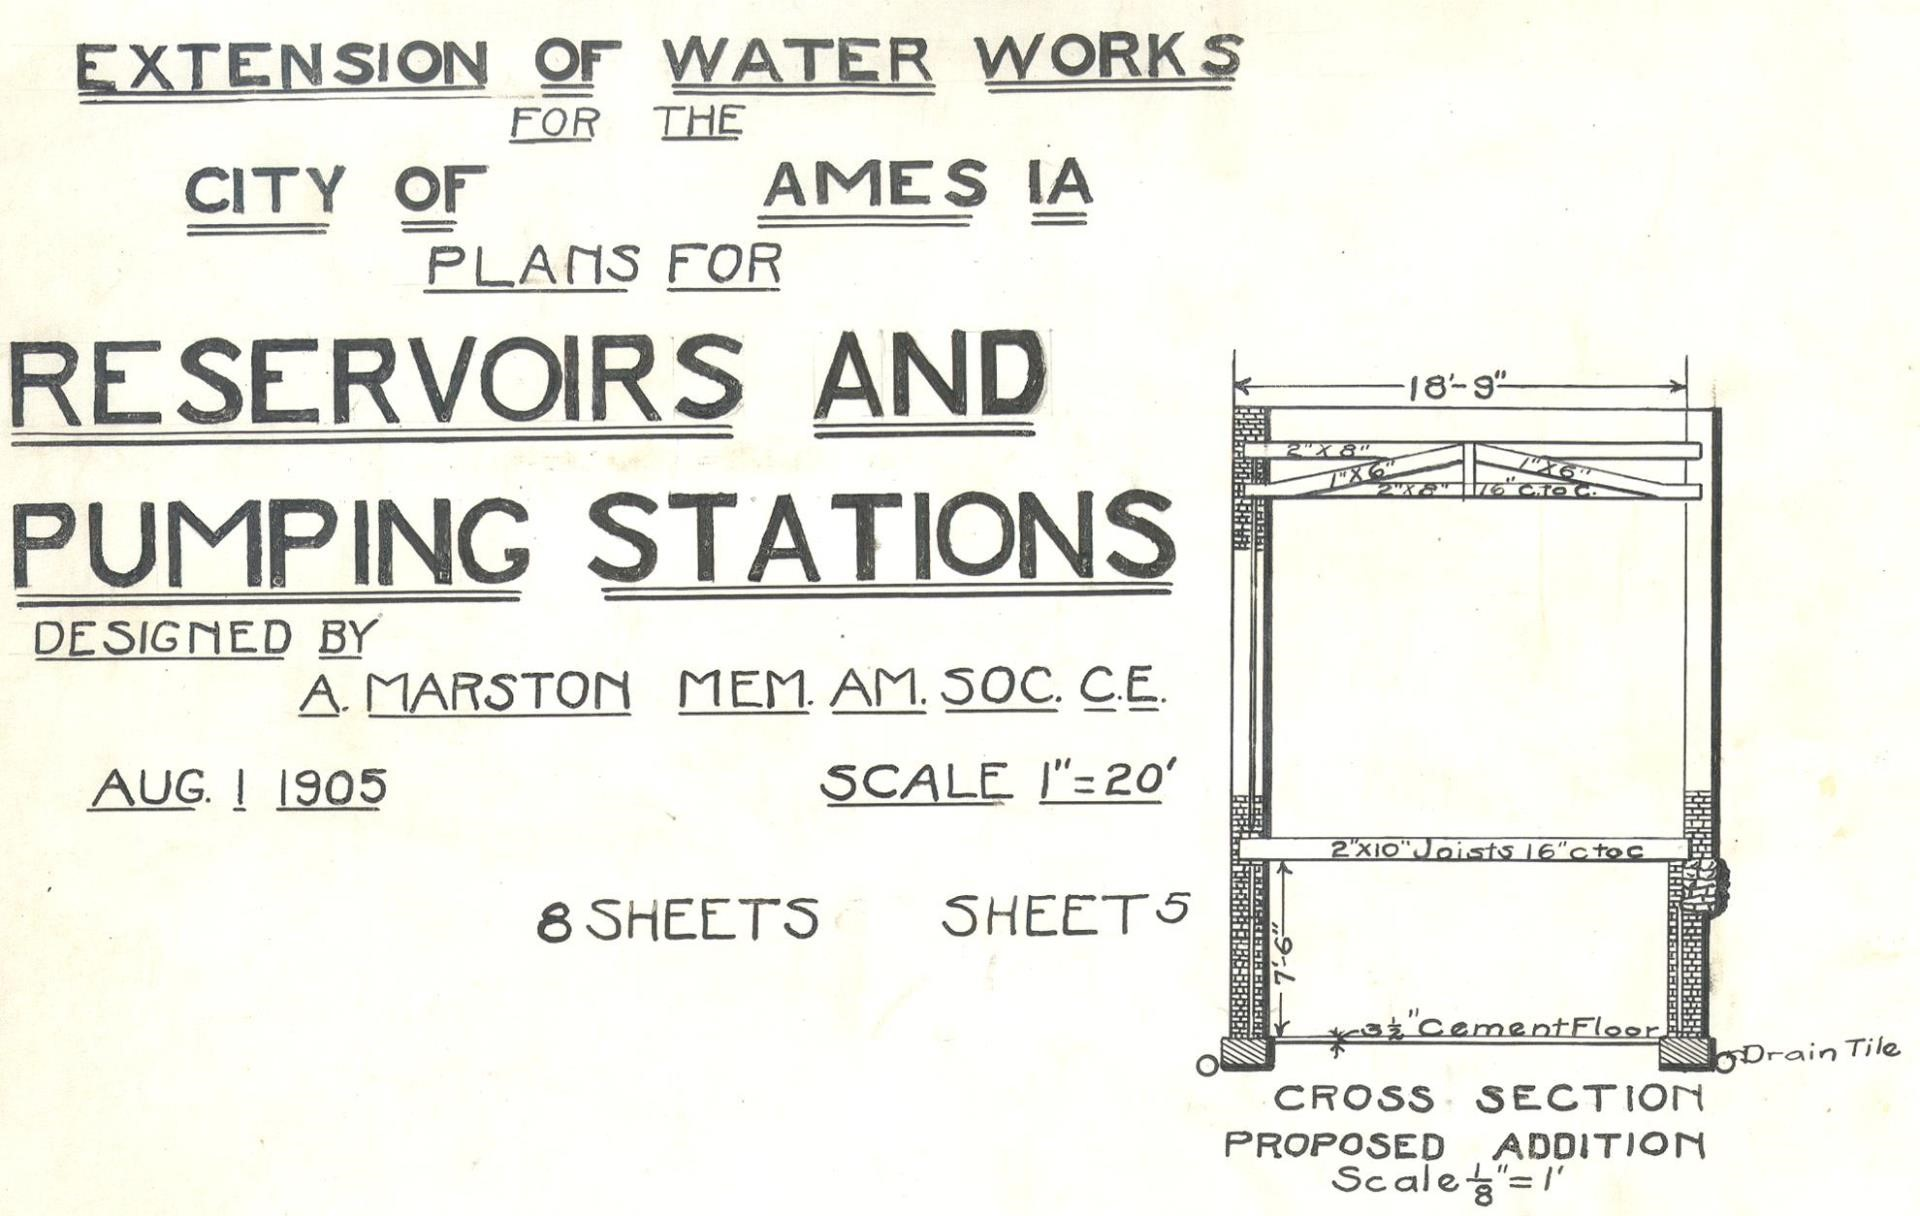 Historical Proposal Cover for Water Works Extension in 1905